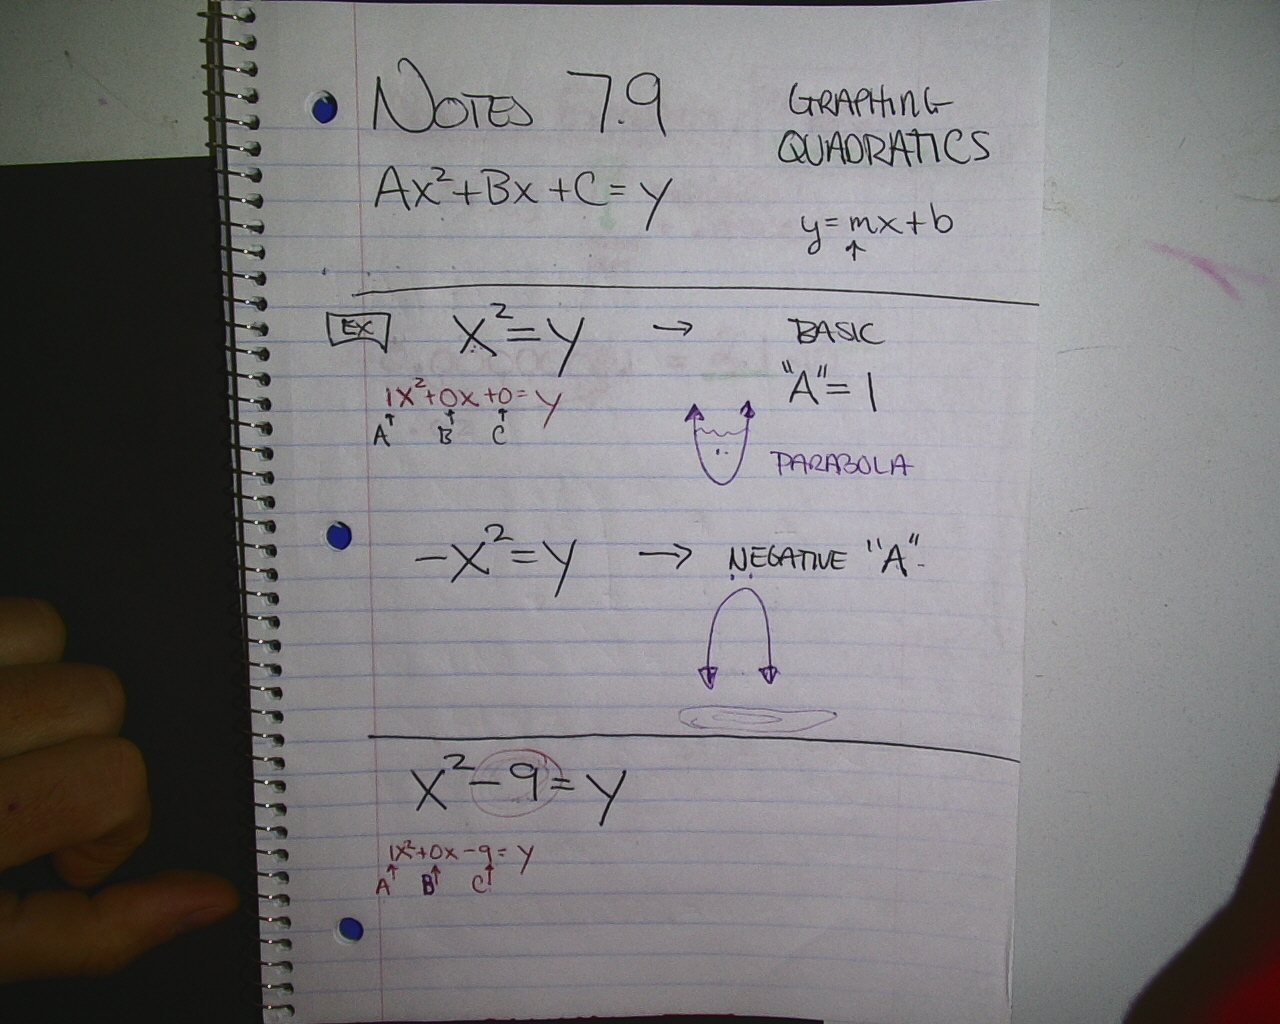 Mr Brzenski S Math Class Algebra Notes 7 9 Graphing